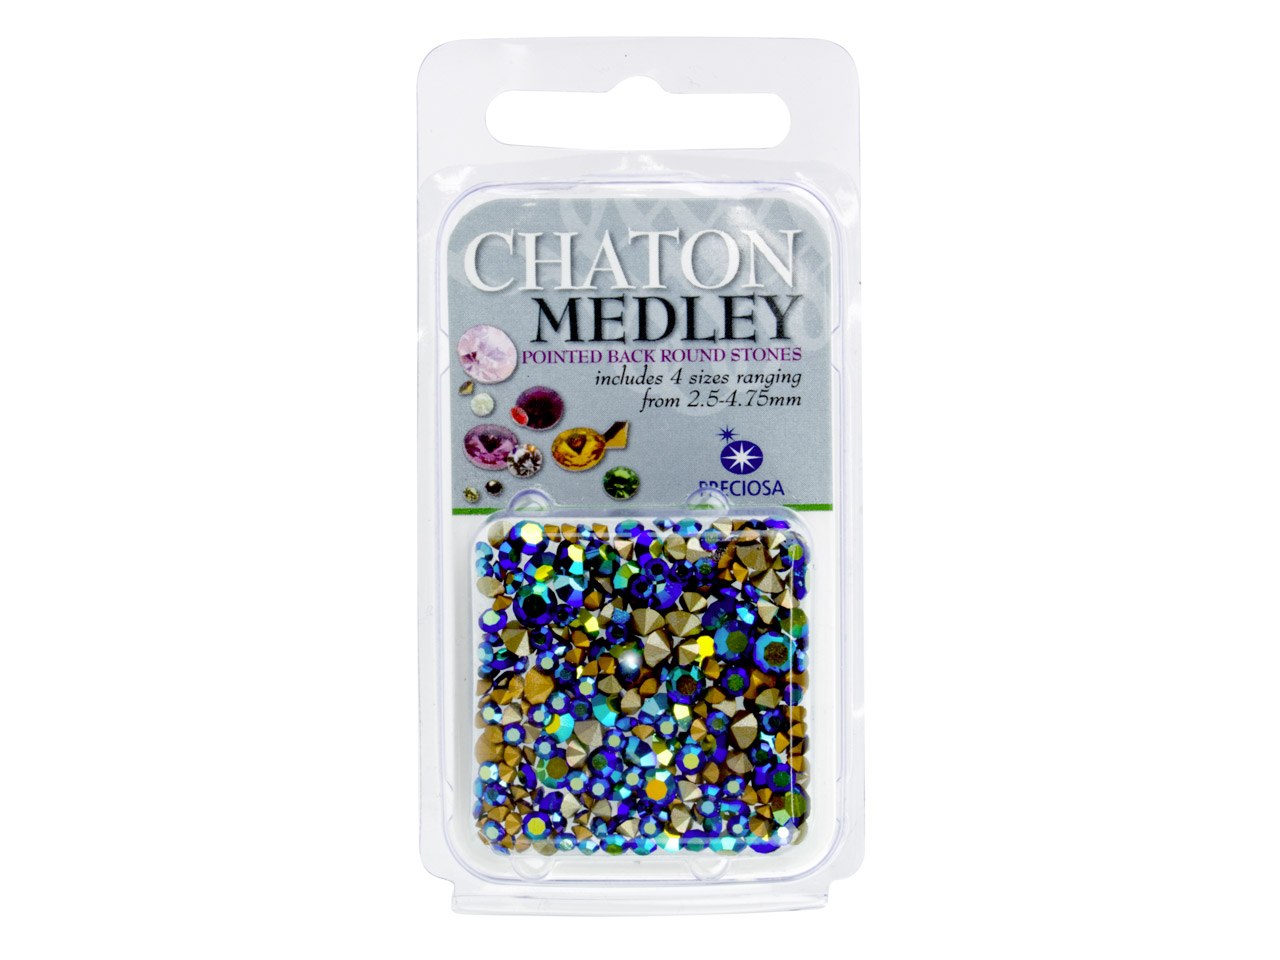 Preciosa Jet Coloured Ab Mix       Chatons, 4 Sizes, 5g